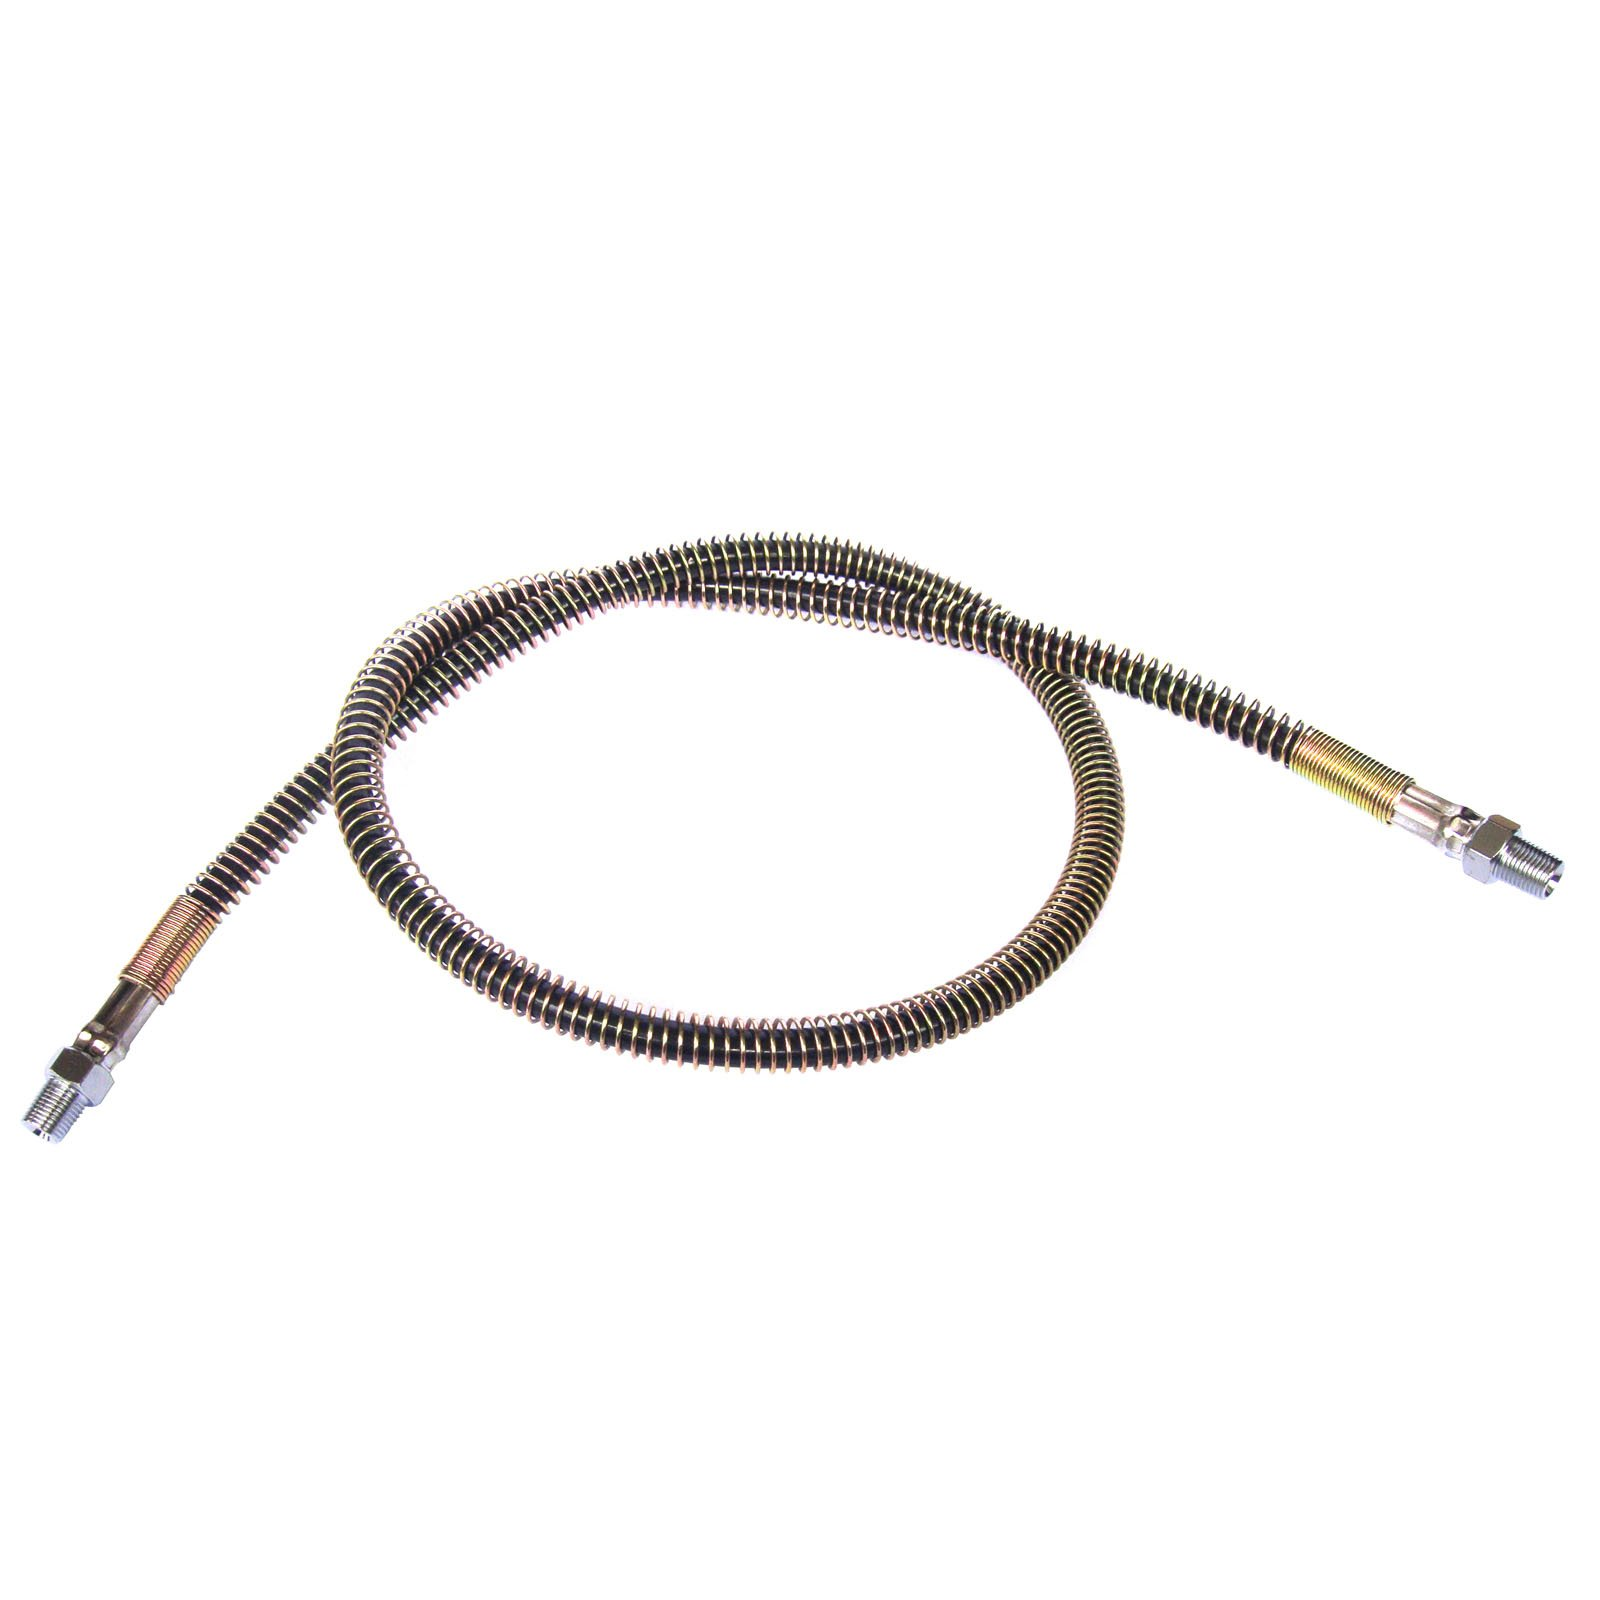 Lucky Sports Paintball PCP Tank High Pressure 36'' Hose Line For Air Fill Station,1/8 NPT